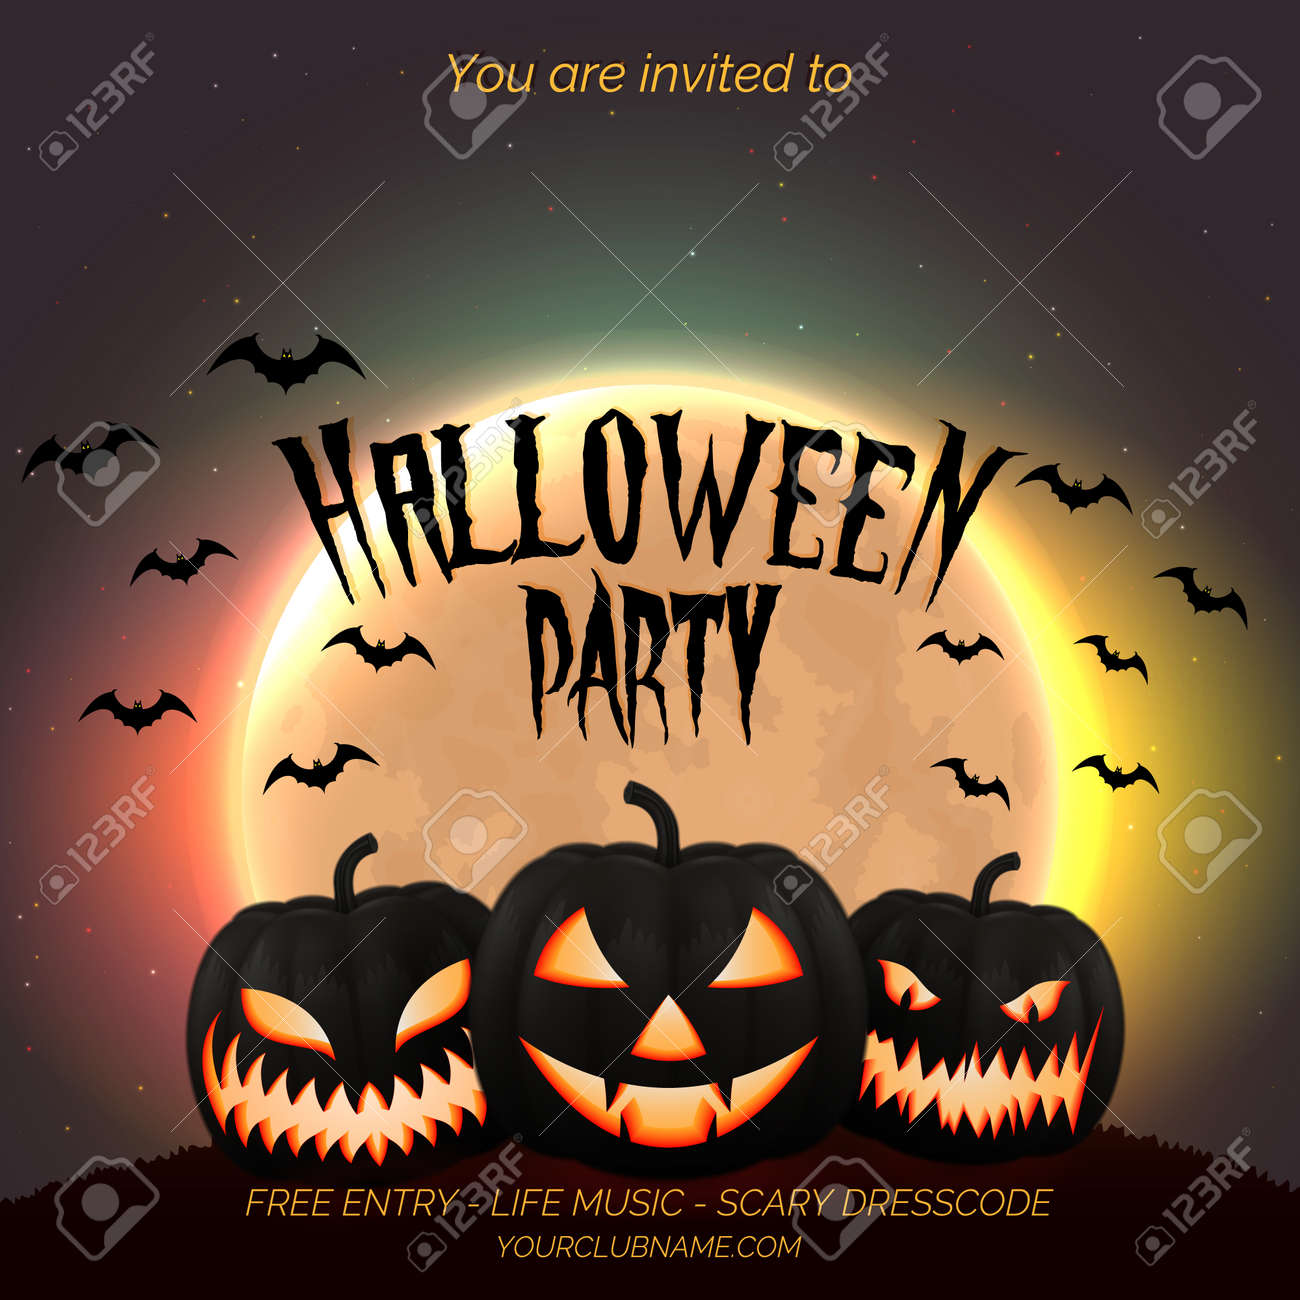 Halloween party poster, flyer template with dark pumpkins and moon background with place for text. - 109879662